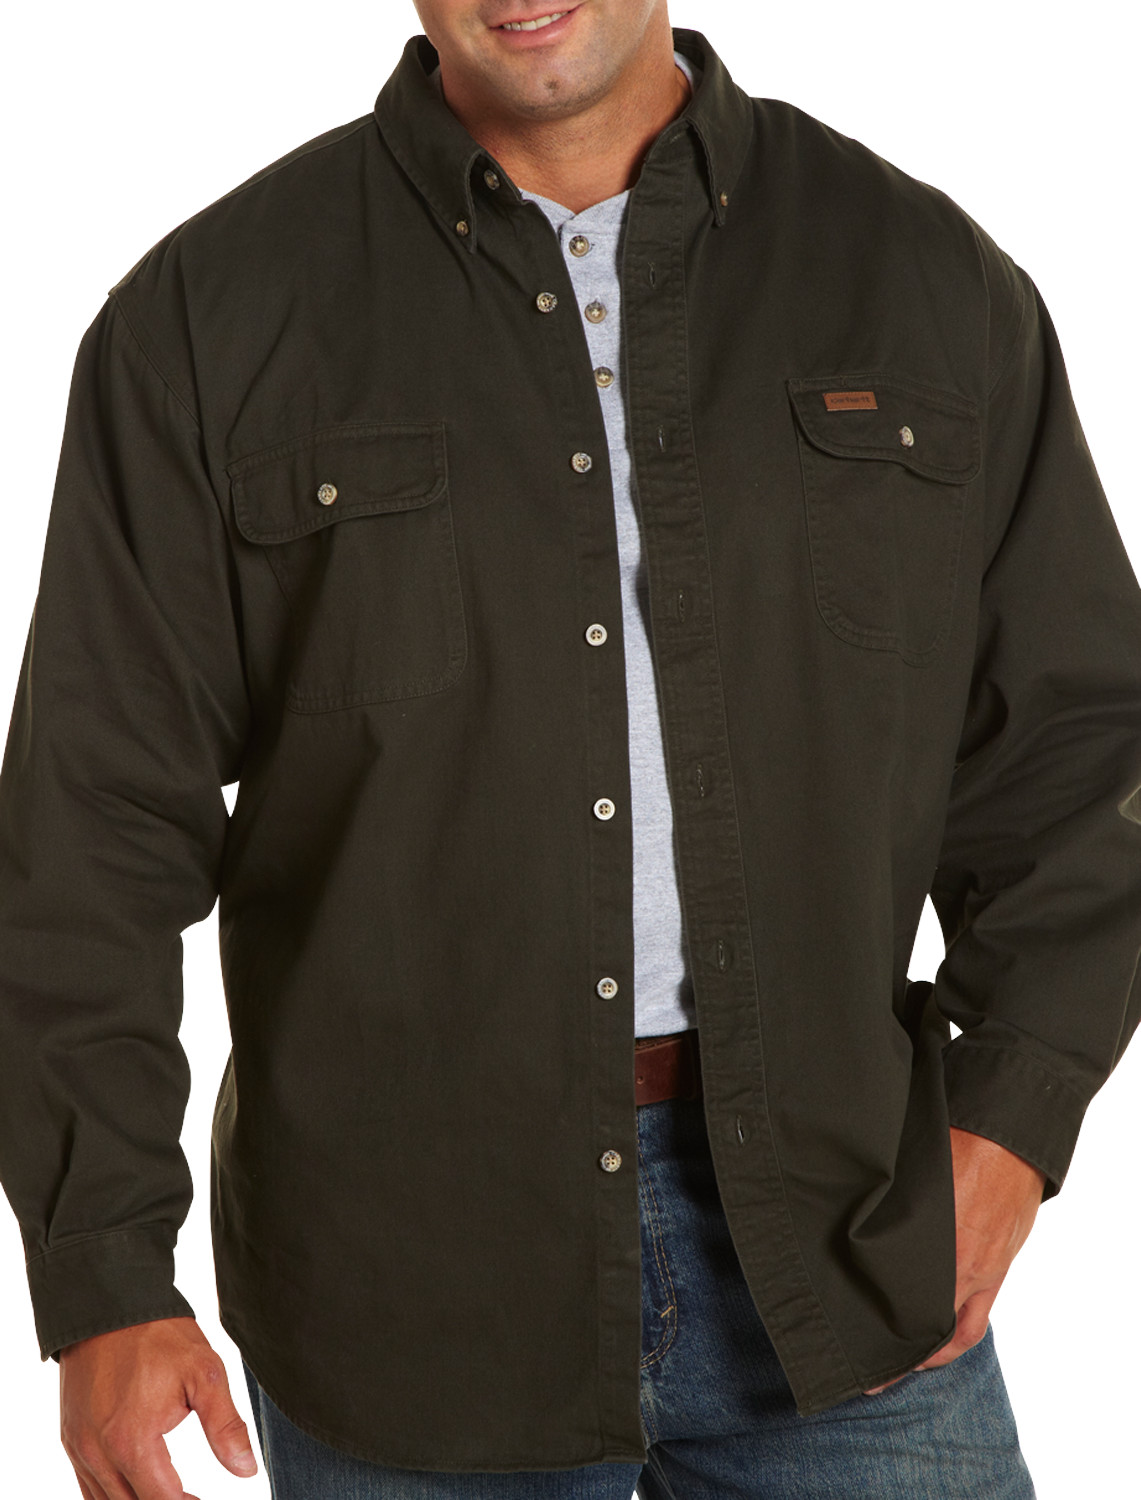 Button Down Work Shirts from Destination XL